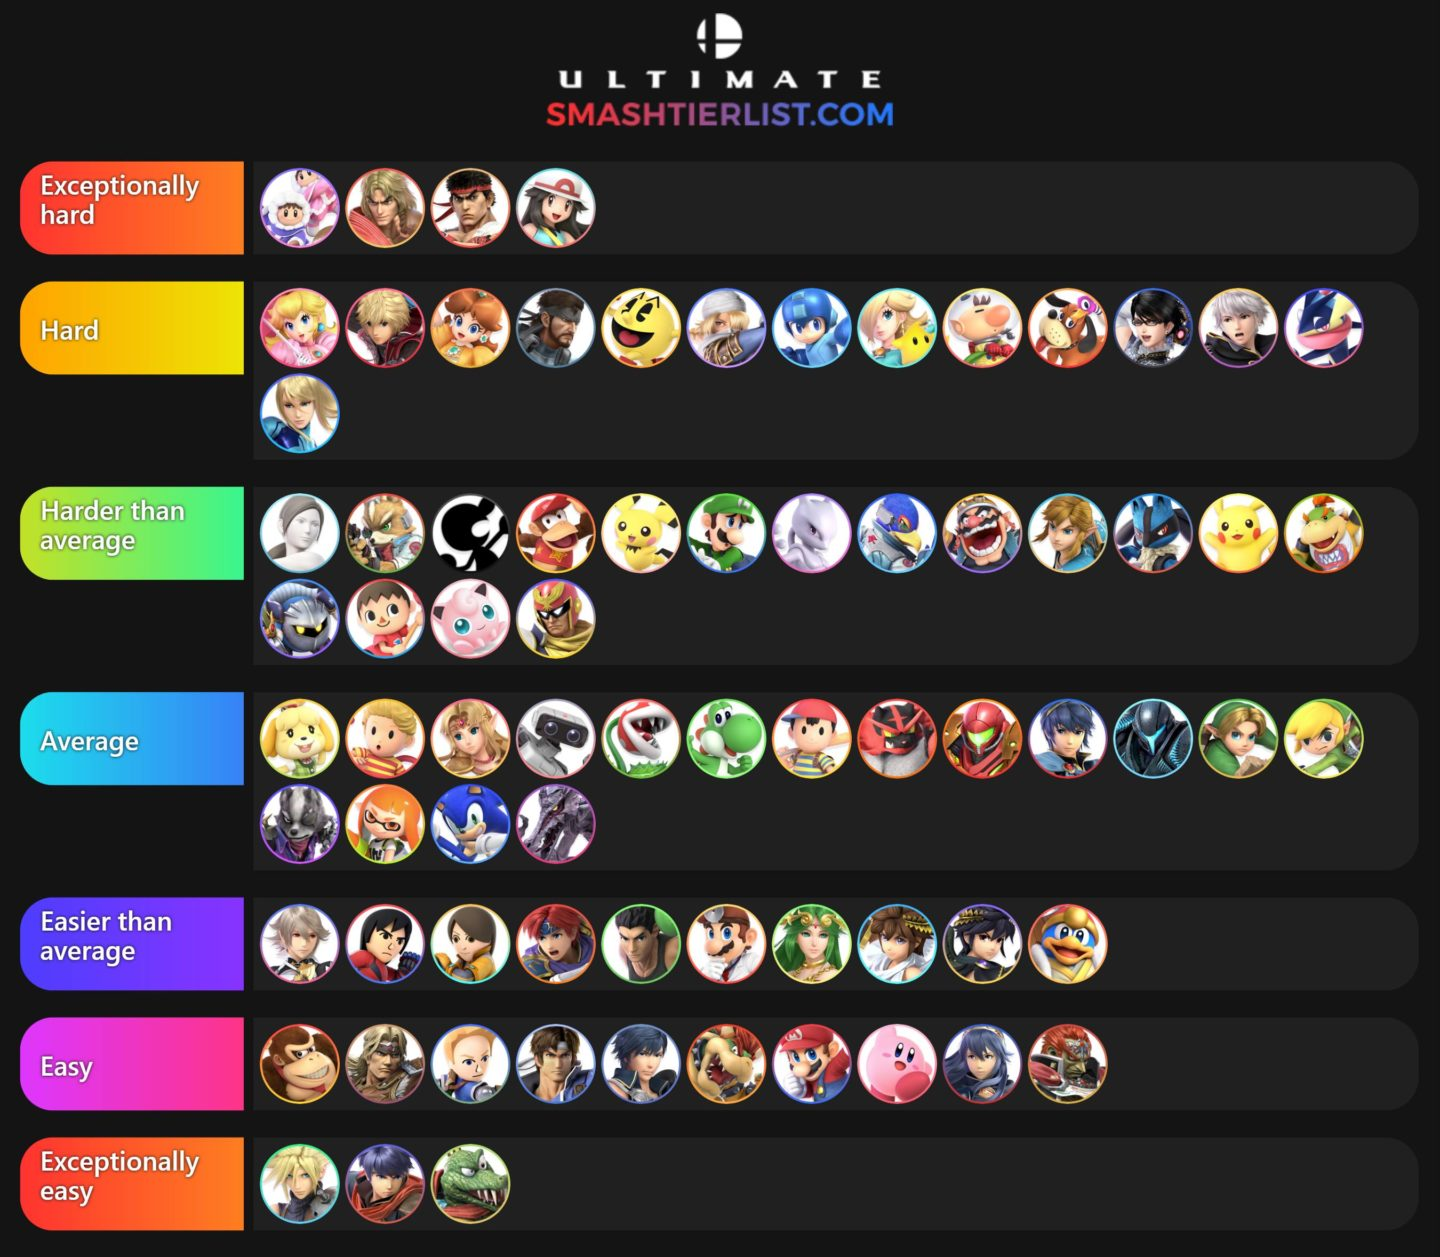 Easiest Characters in Smash Ultimate from Reddit Poll - Elecspo